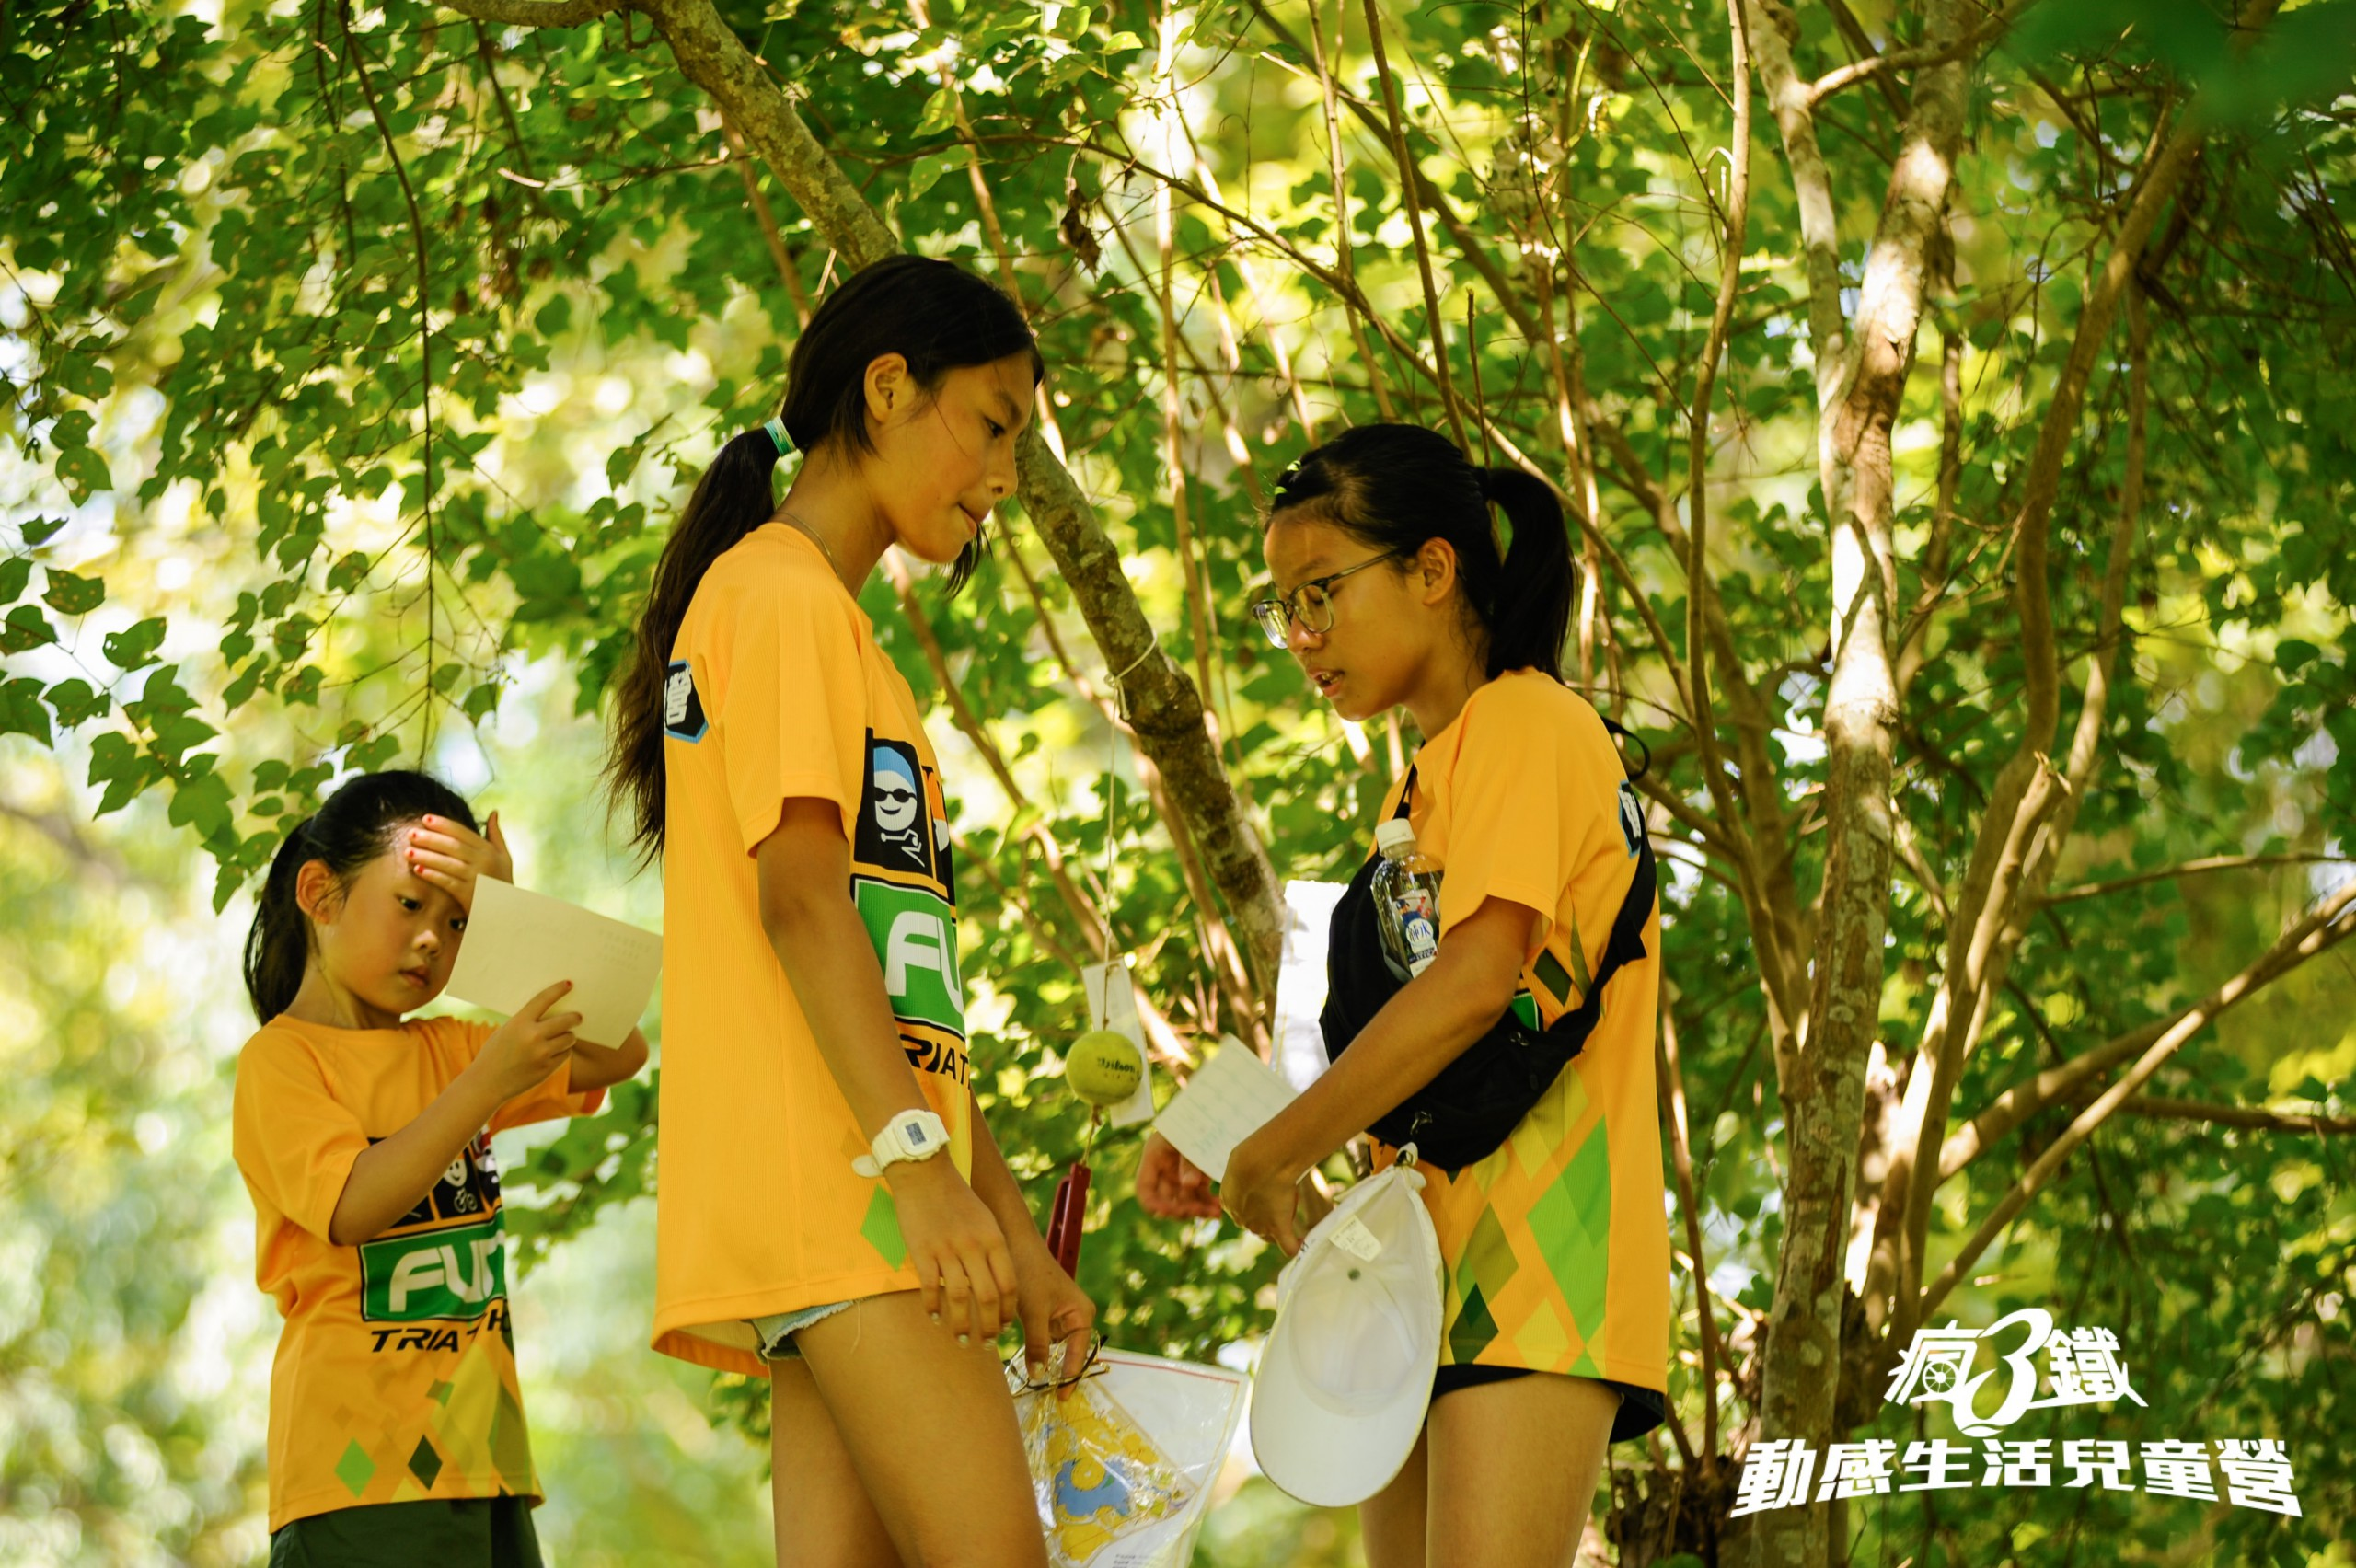 德築-DEZU-project-Fun3sport-children-summer-camp-33